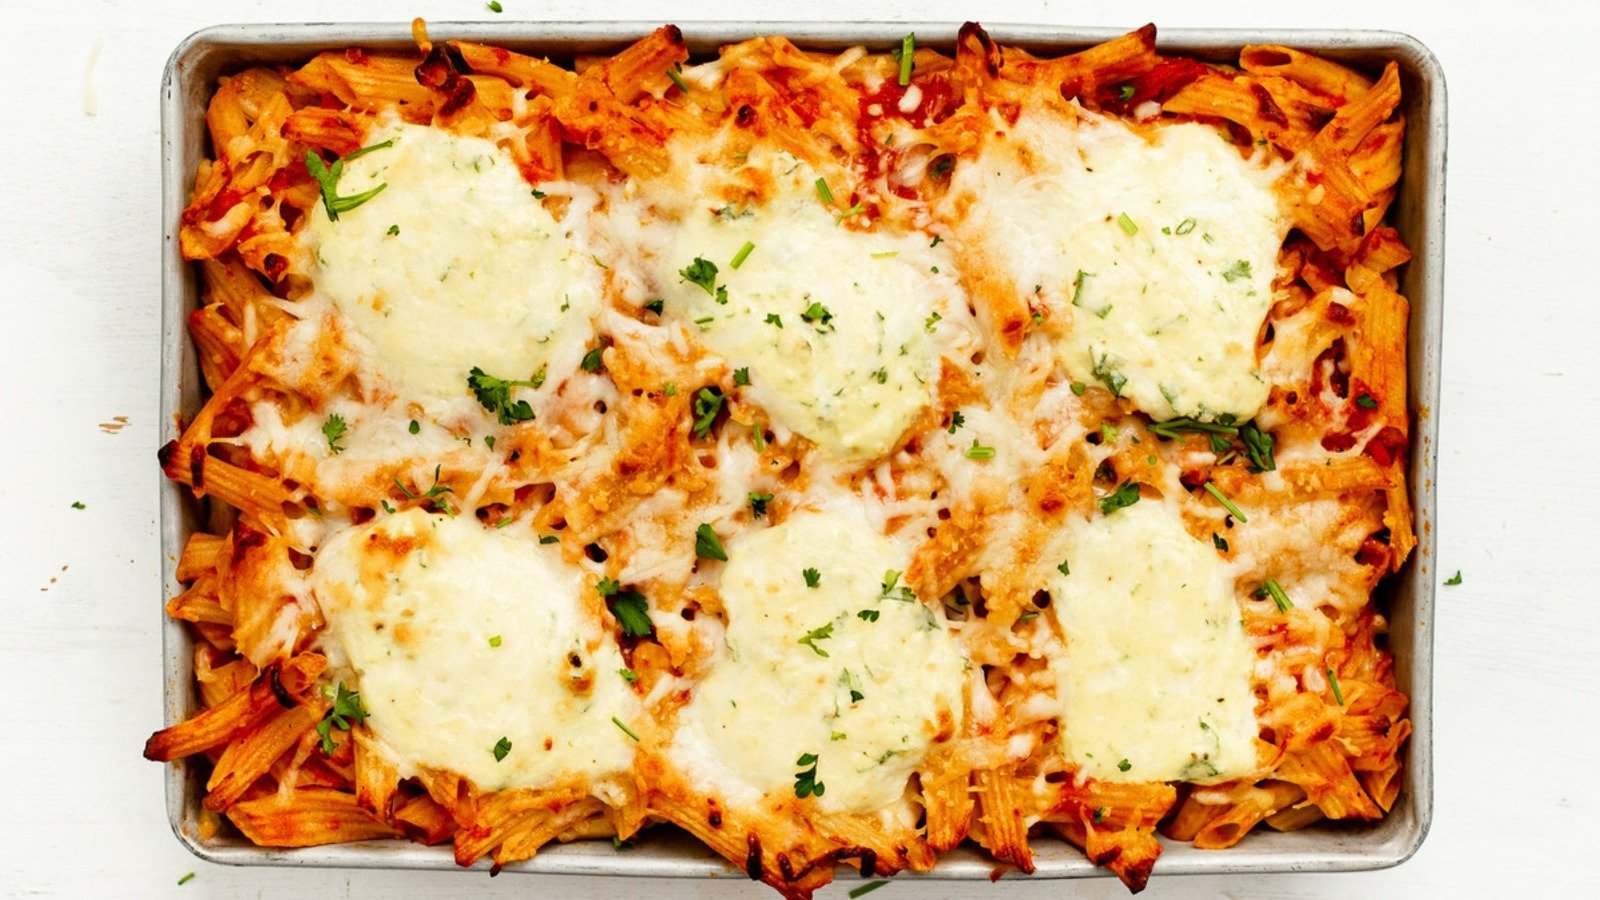 The Baked Ziti Recipe Your Whole Family Will Beg For